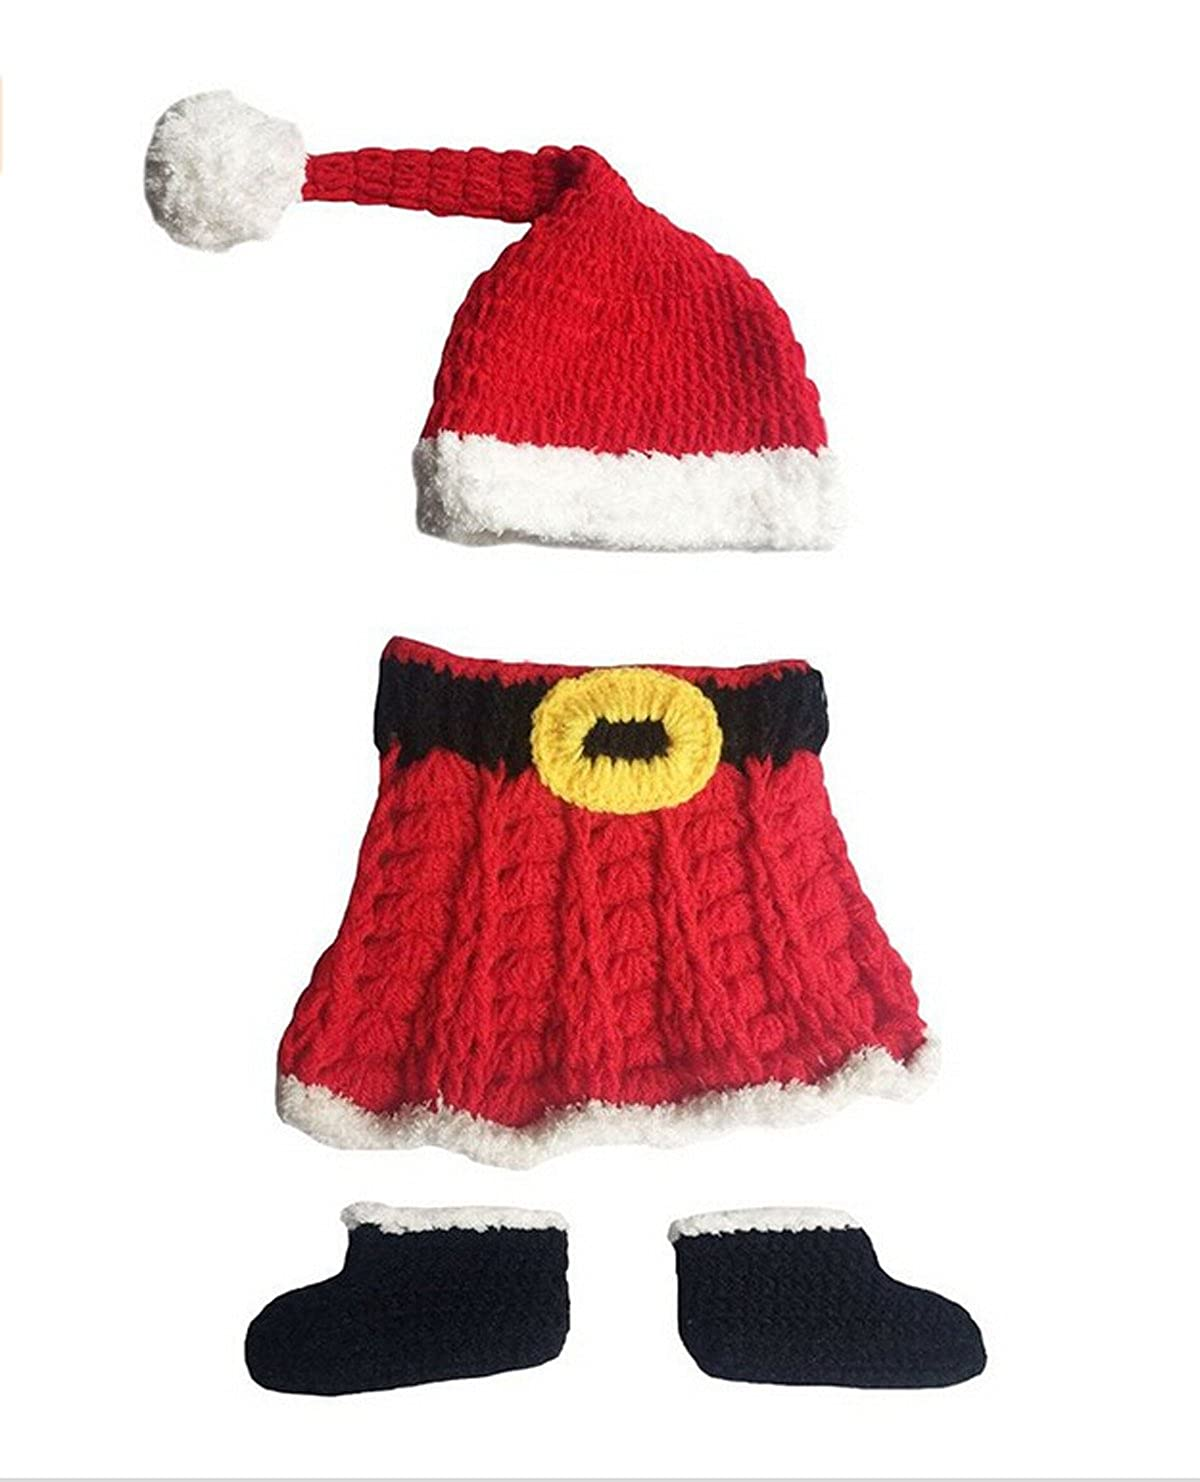 25bb5f87772ca Jastore Infant Newborn Costume Photography Prop Santa Claus Knitted Outfit